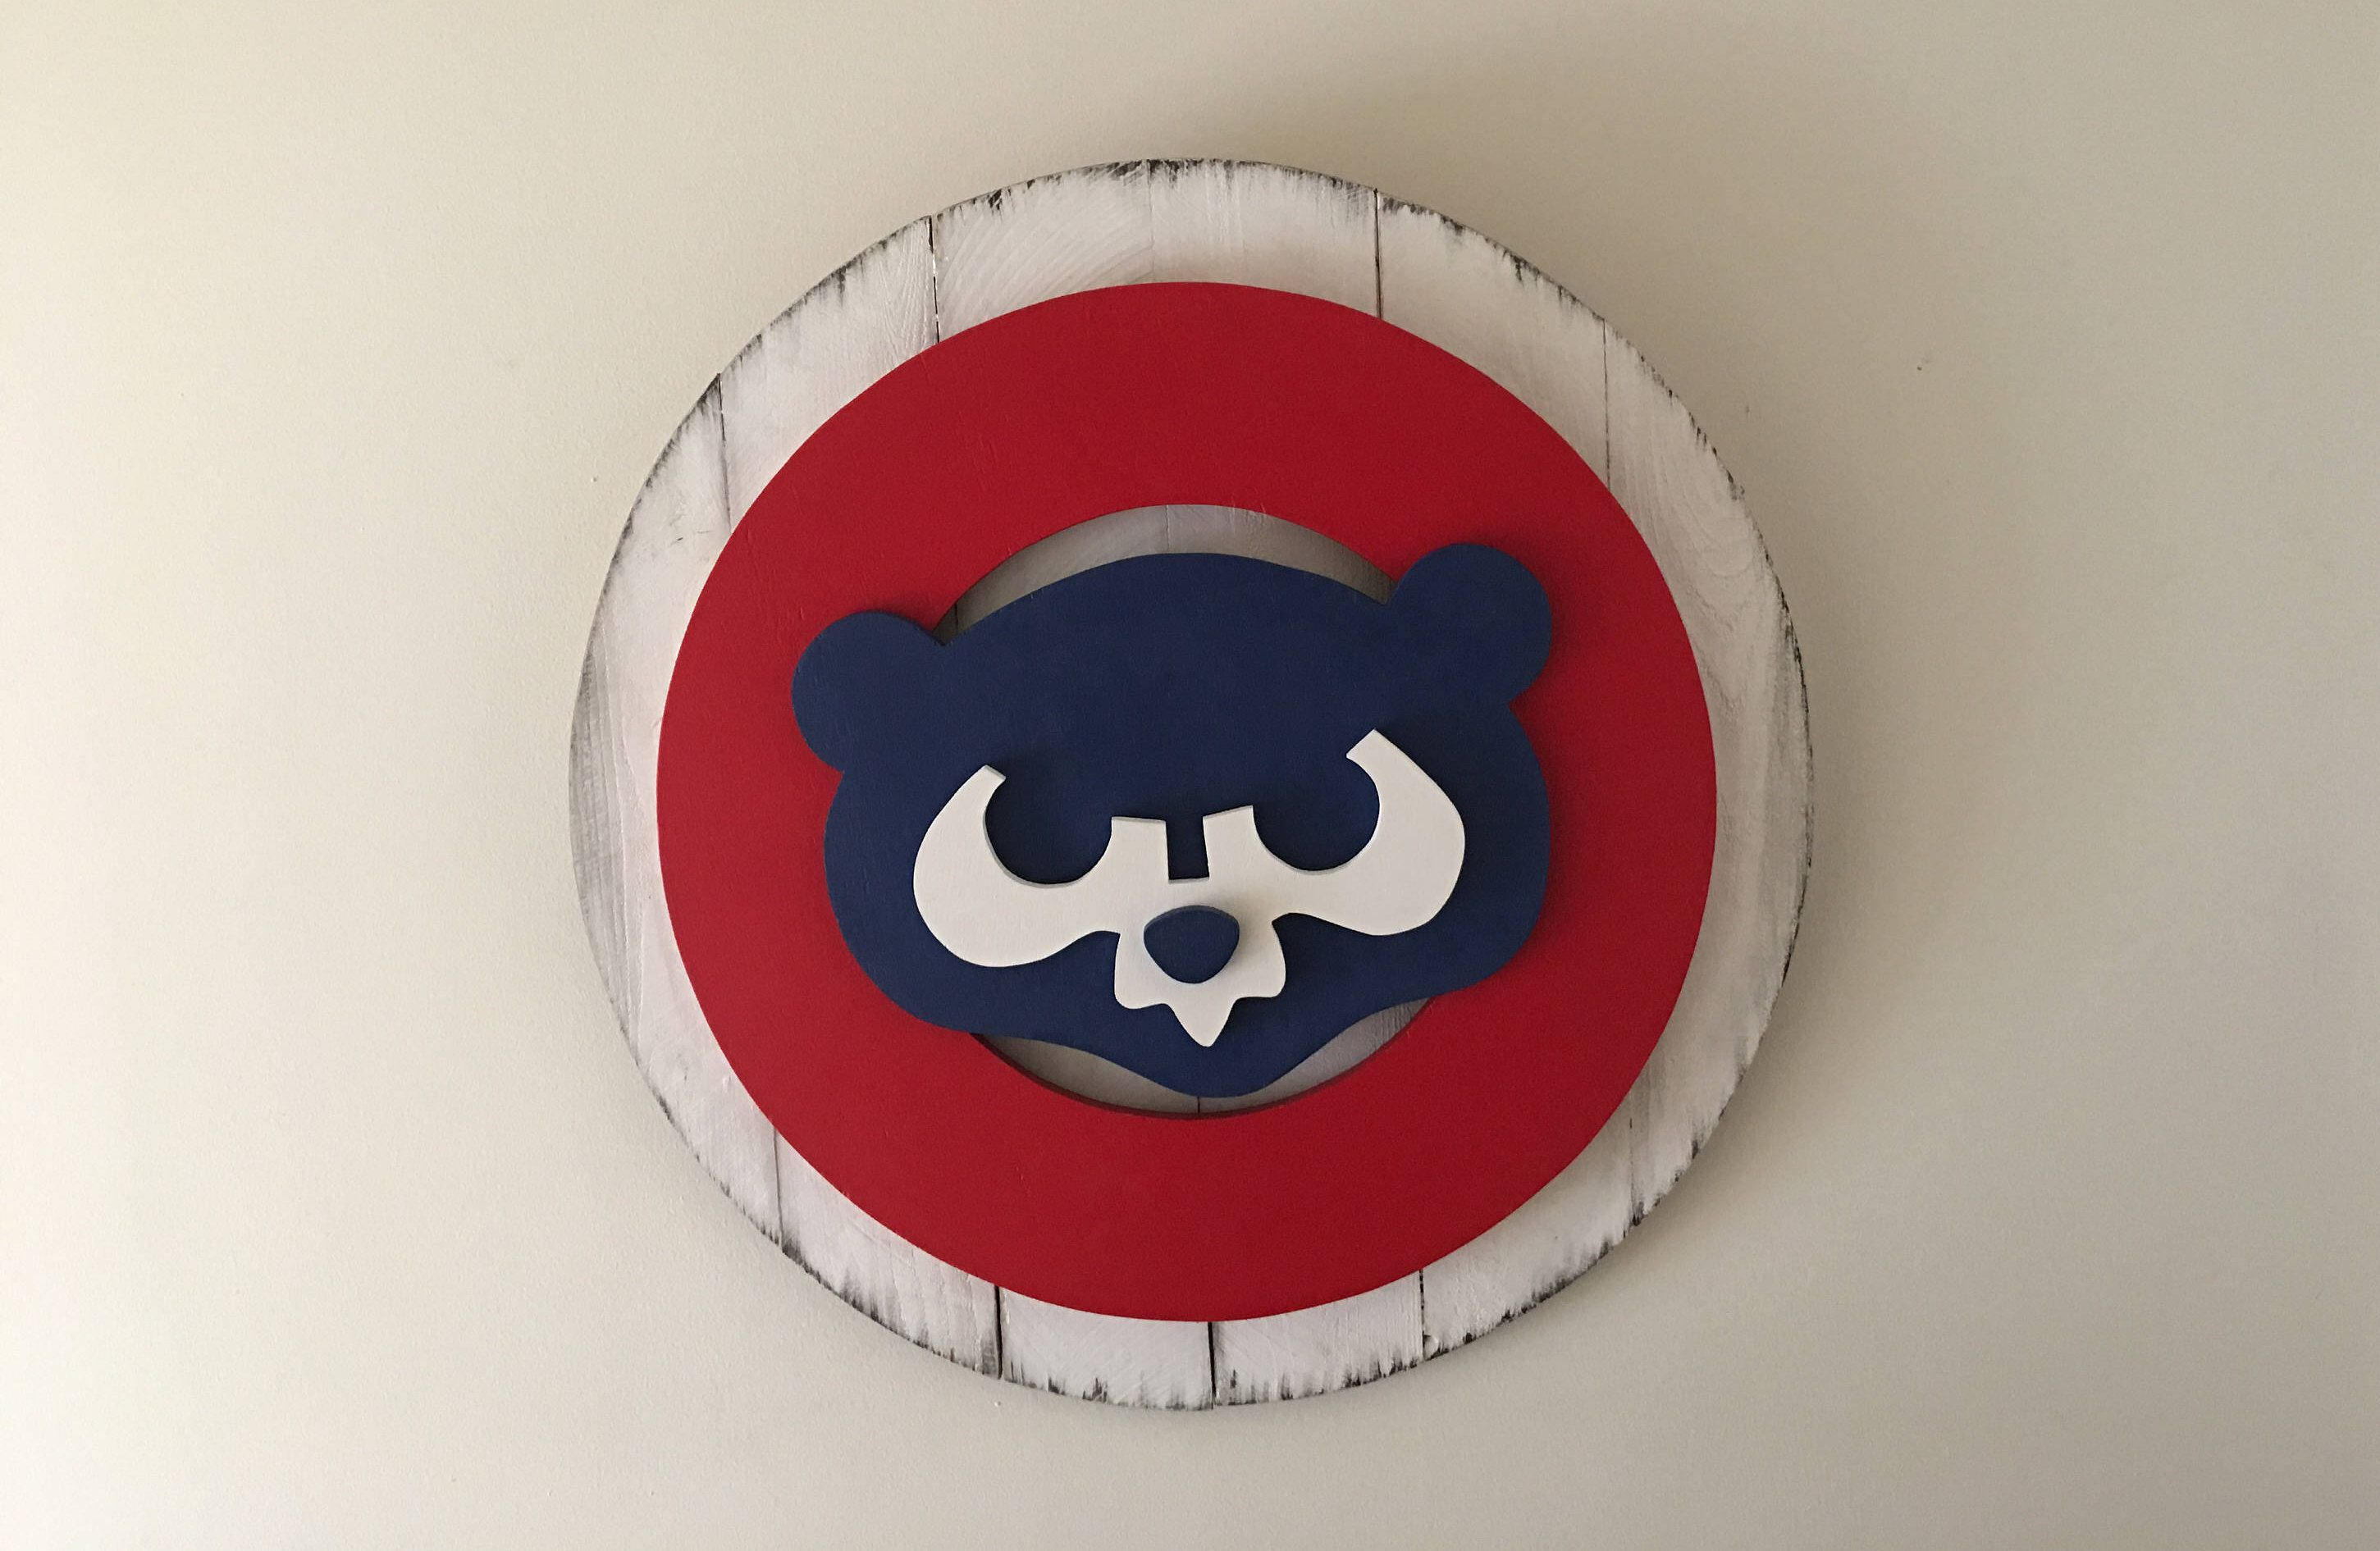 Chicago Cubs 3D Vintage Wood Sign by DMCdesignsShop on Etsy https://www.etsy.com/listing/514133720/chicago-cubs-3d-vintage-wood-sign